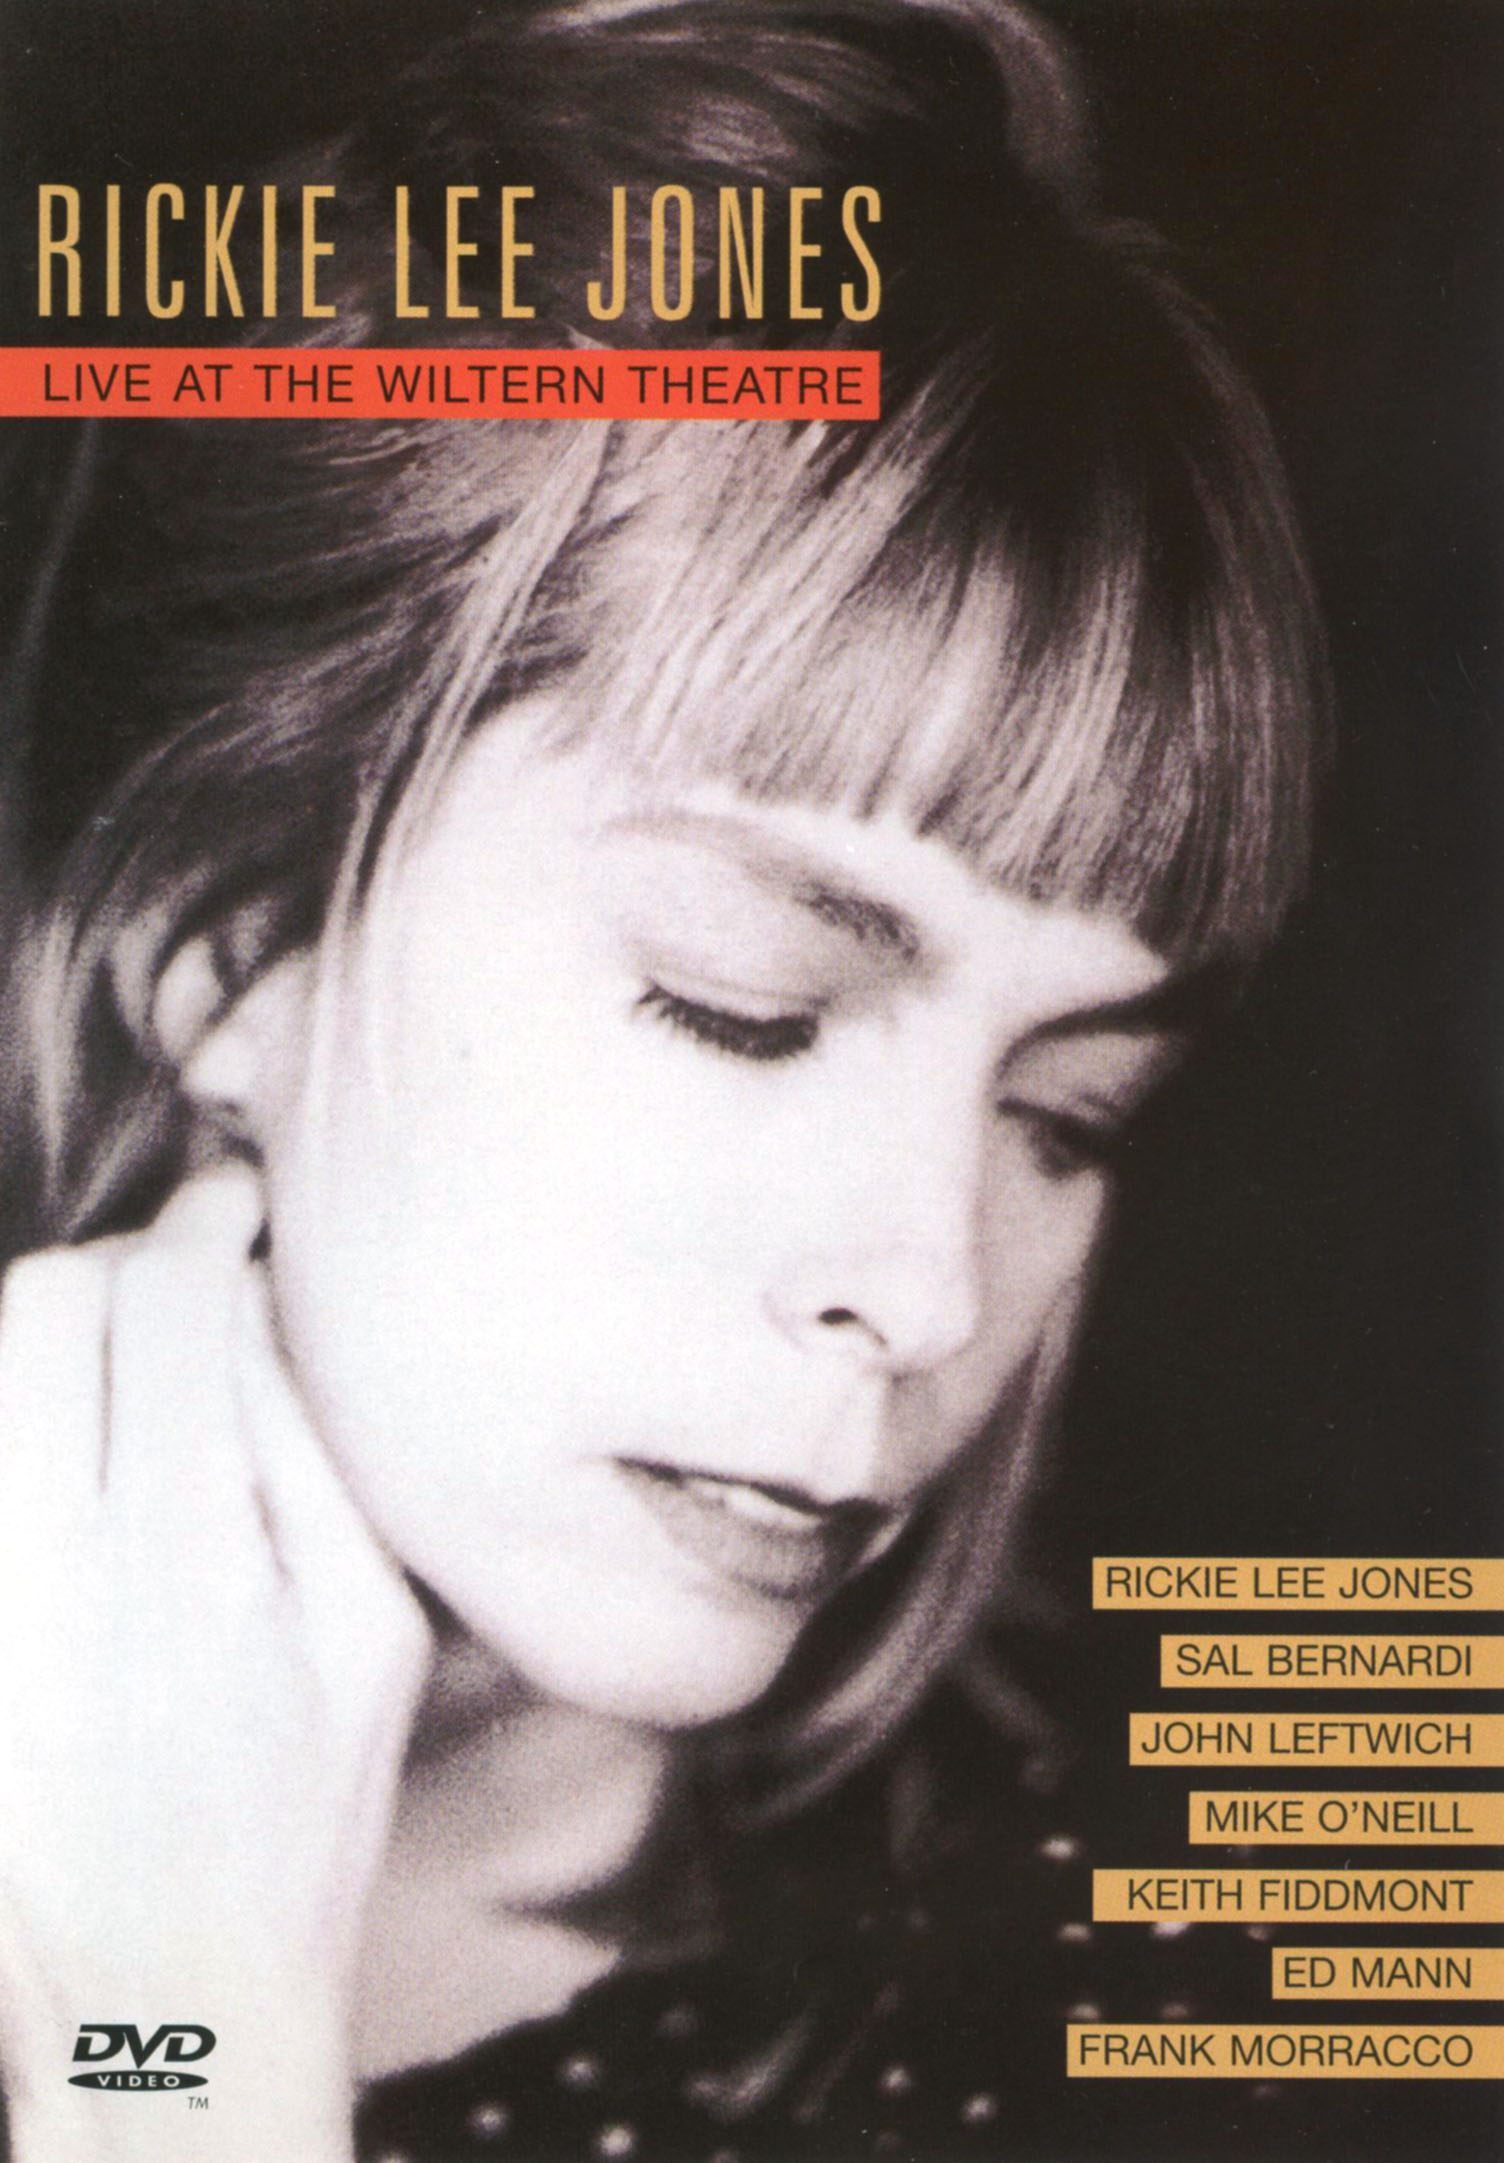 Rickie Lee Jones: Live at the Wiltern Theatre